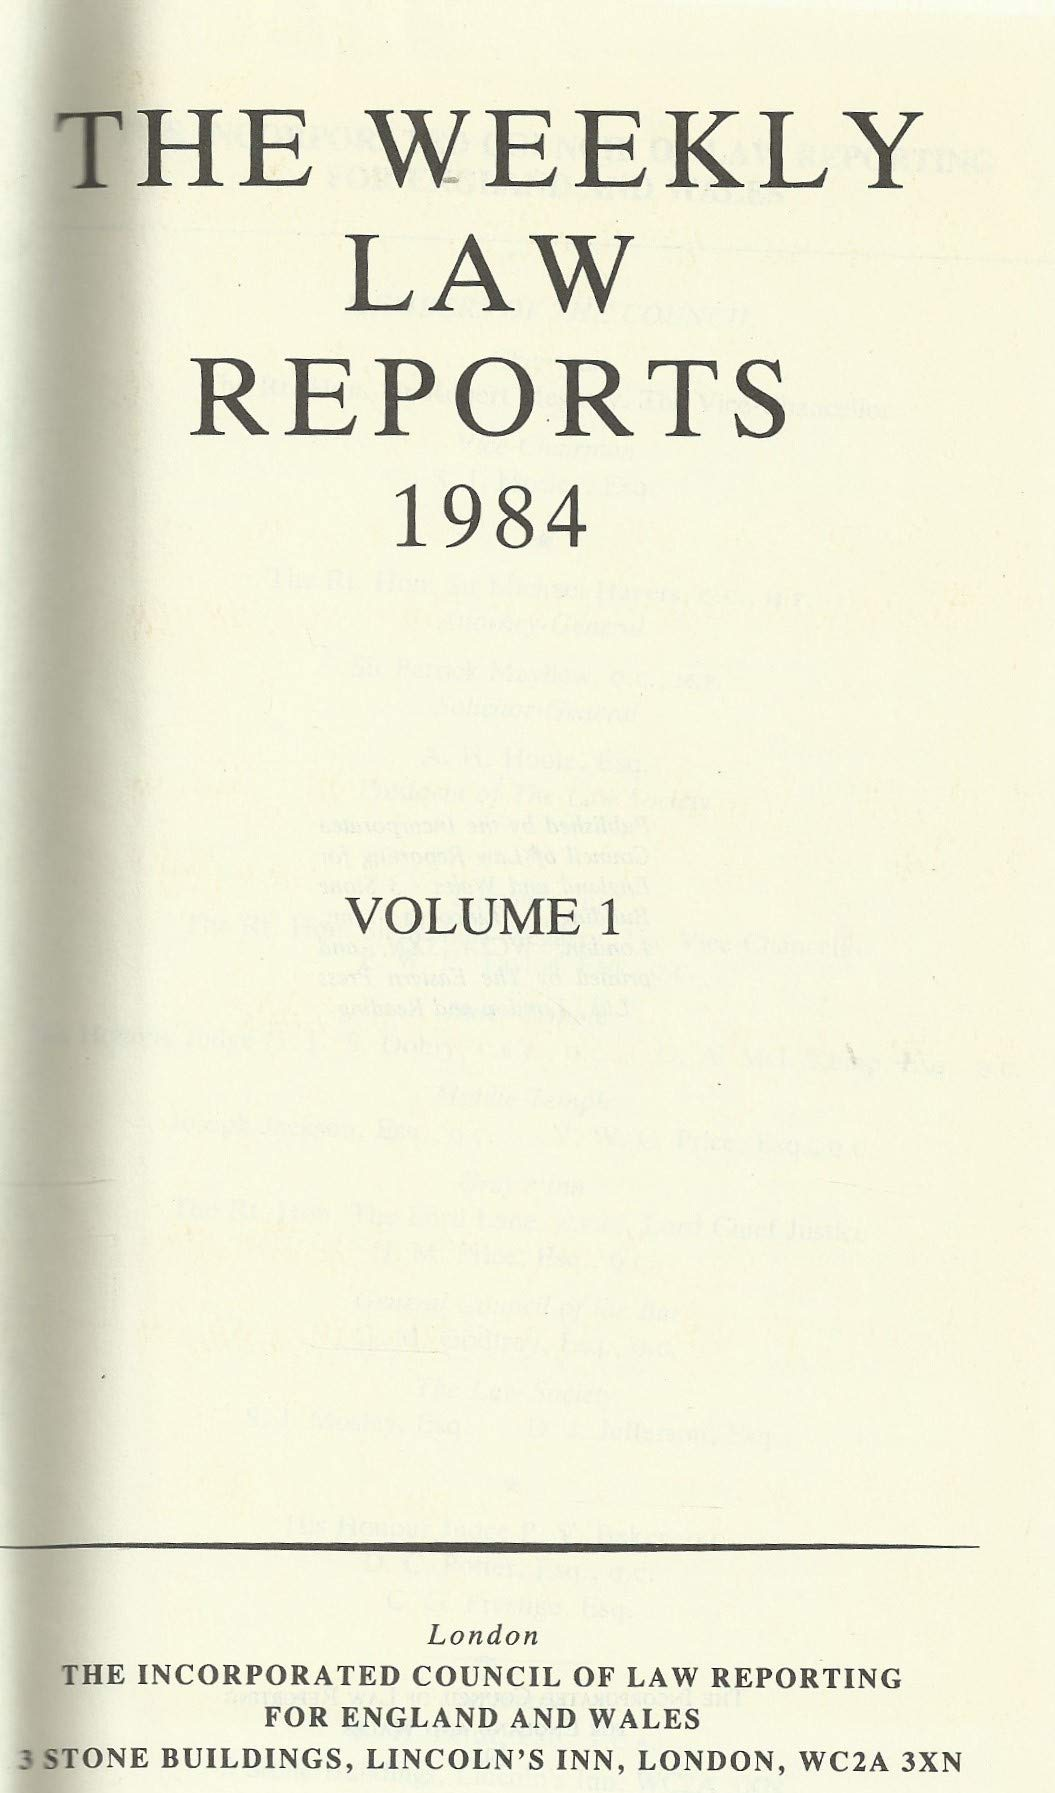 Weekly Law Reports 1984 Vol 1